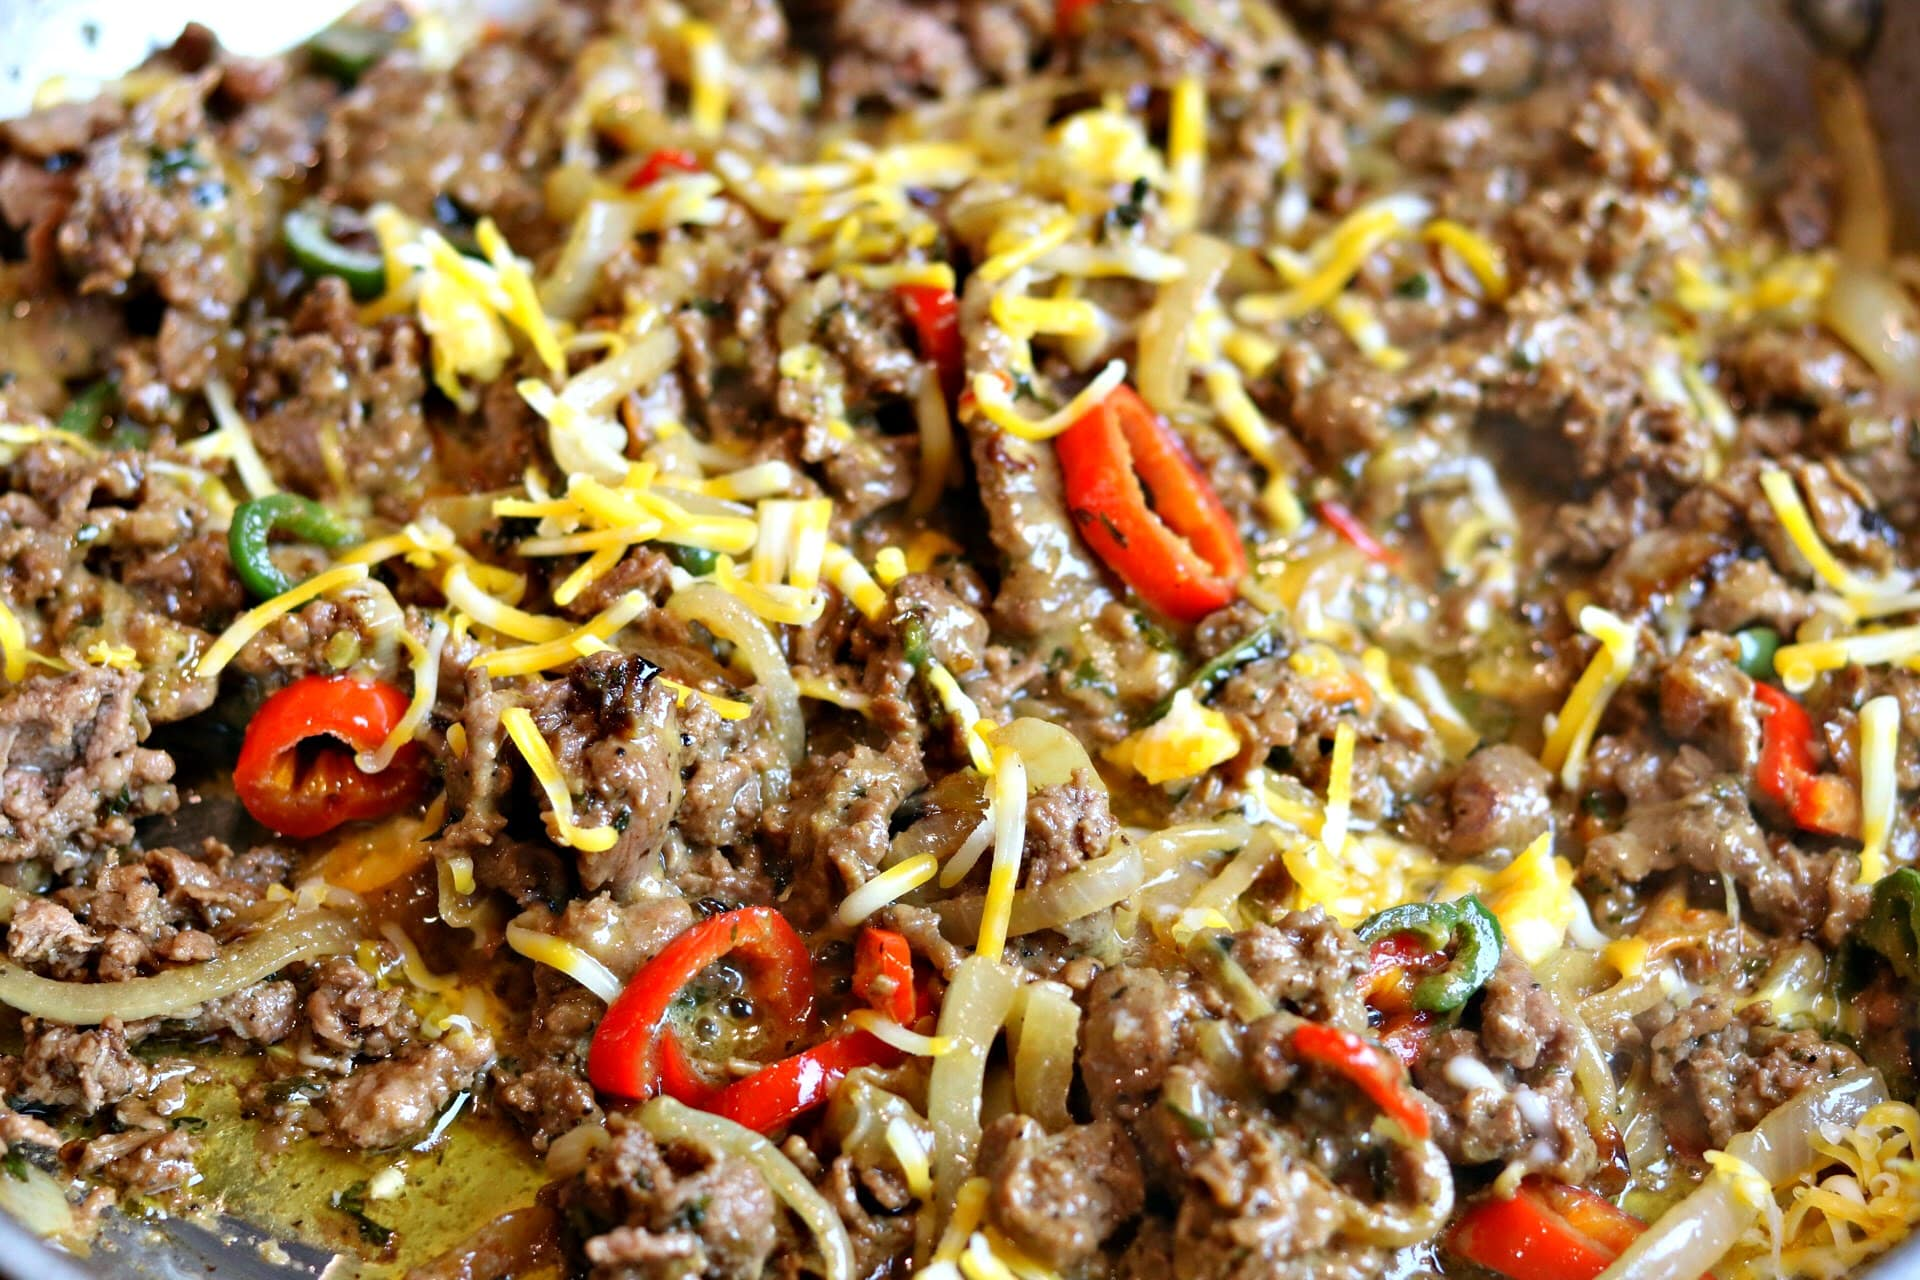 A keto-friendly and low-carb recipe for Philly Cheesesteak using roasted bell peppers as a replacement for bread. #keto #lowcarb #easymeal #ketodinner